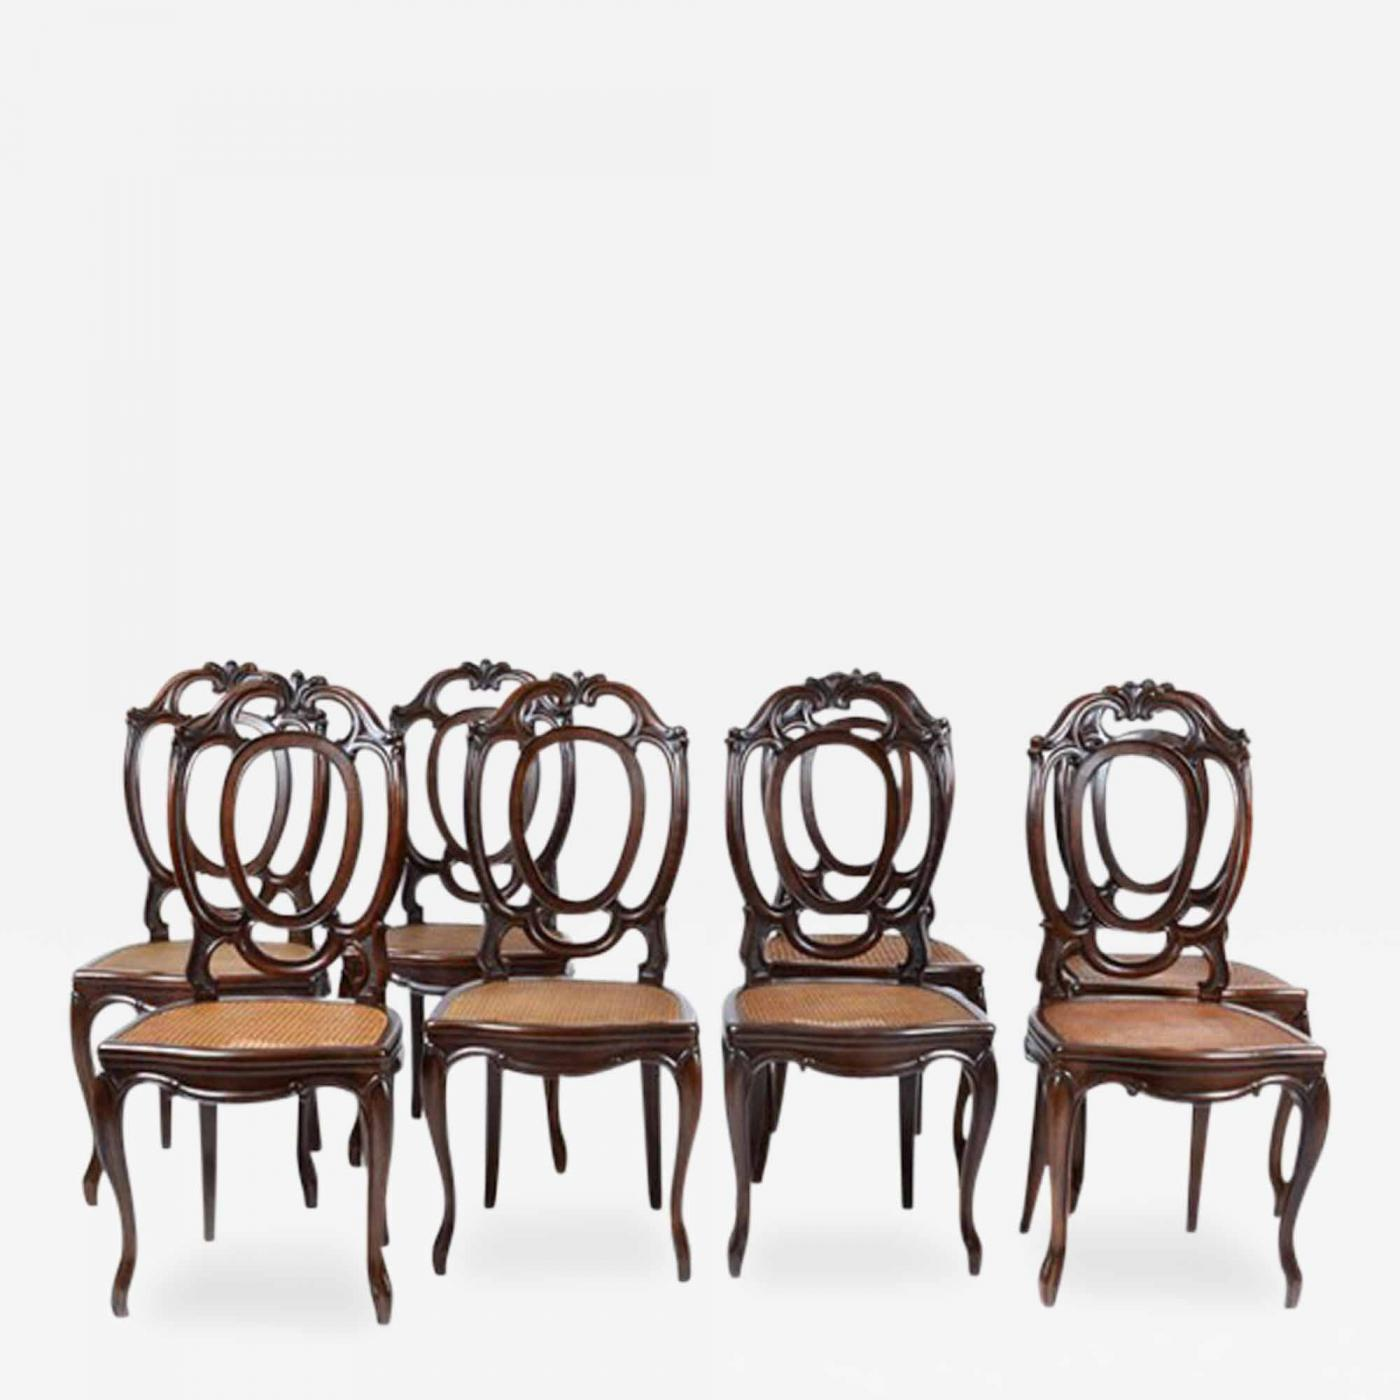 1920 s Antique Italian Set of 8 Dining Chairs Mahogany